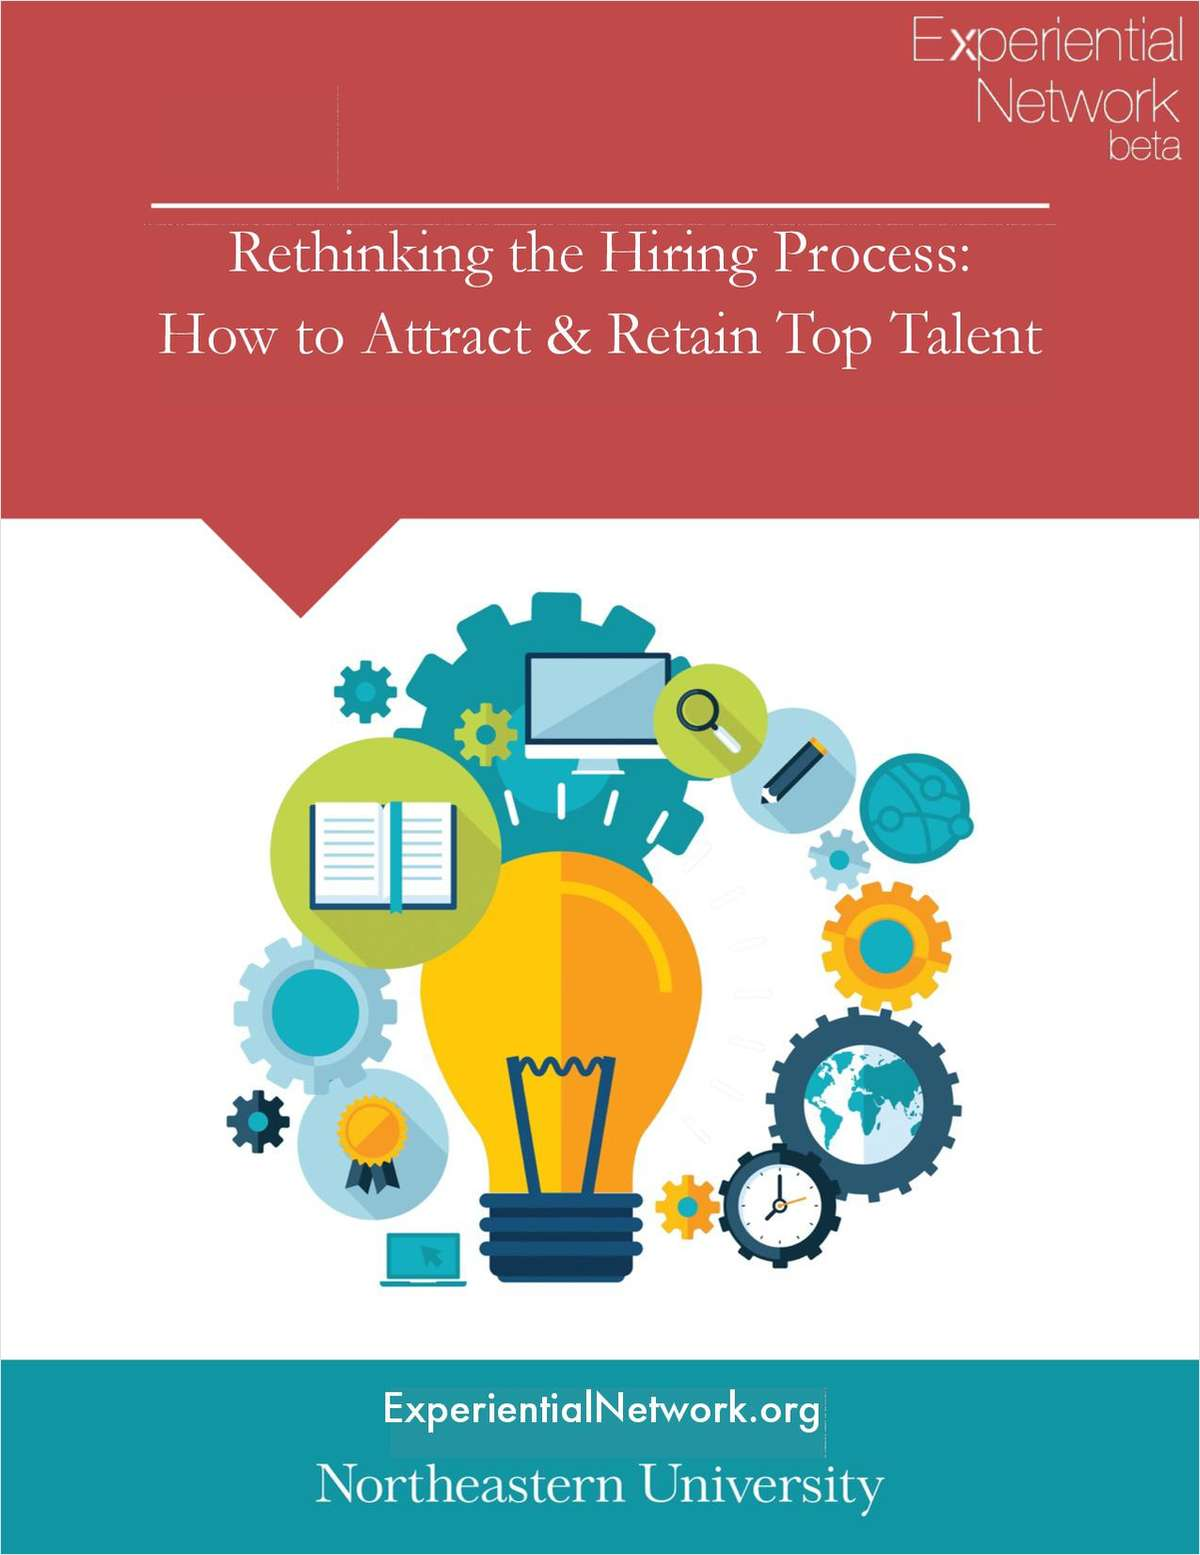 Rethinking the Hiring Process: How to Attract & Retain Top Talent